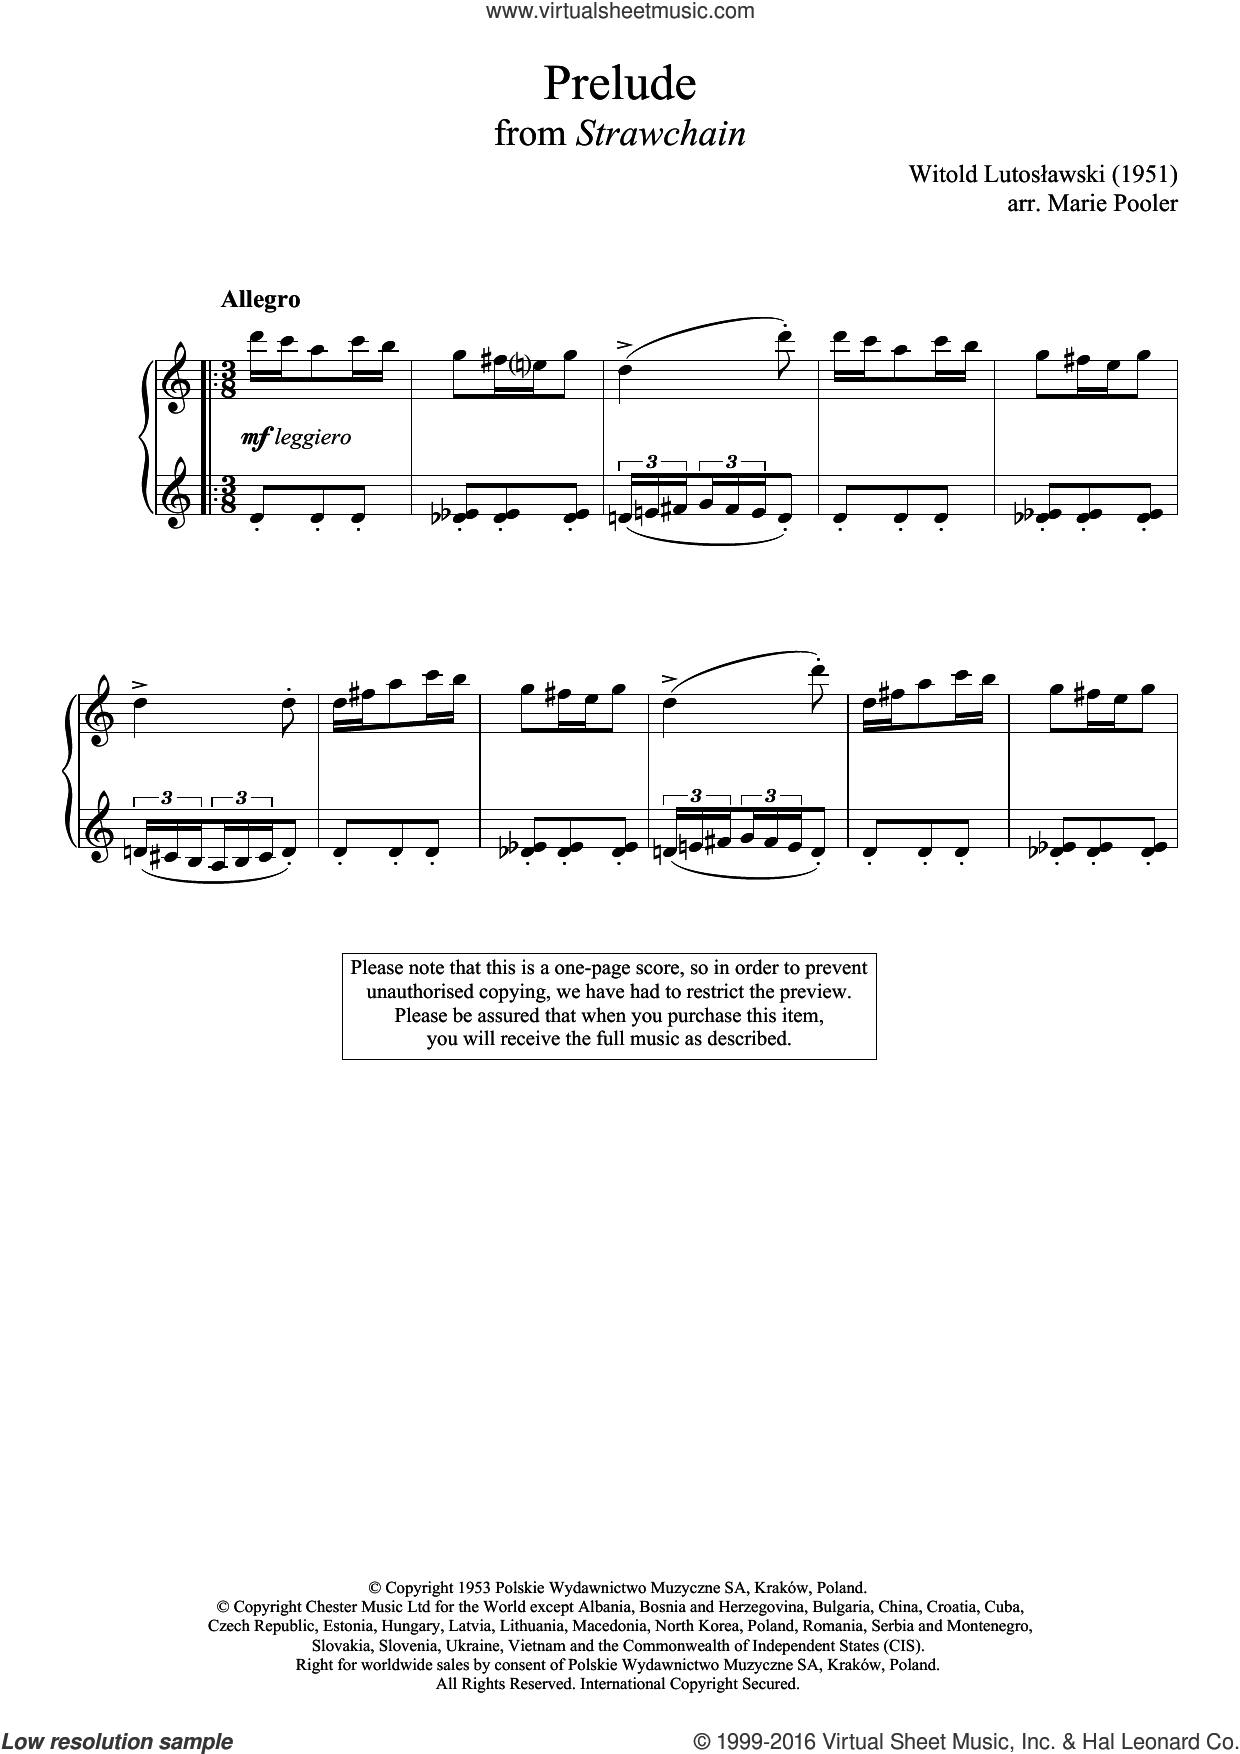 Prelude (from 'Strawchain') sheet music for piano solo by Witold Lutoslawski, classical score, intermediate skill level